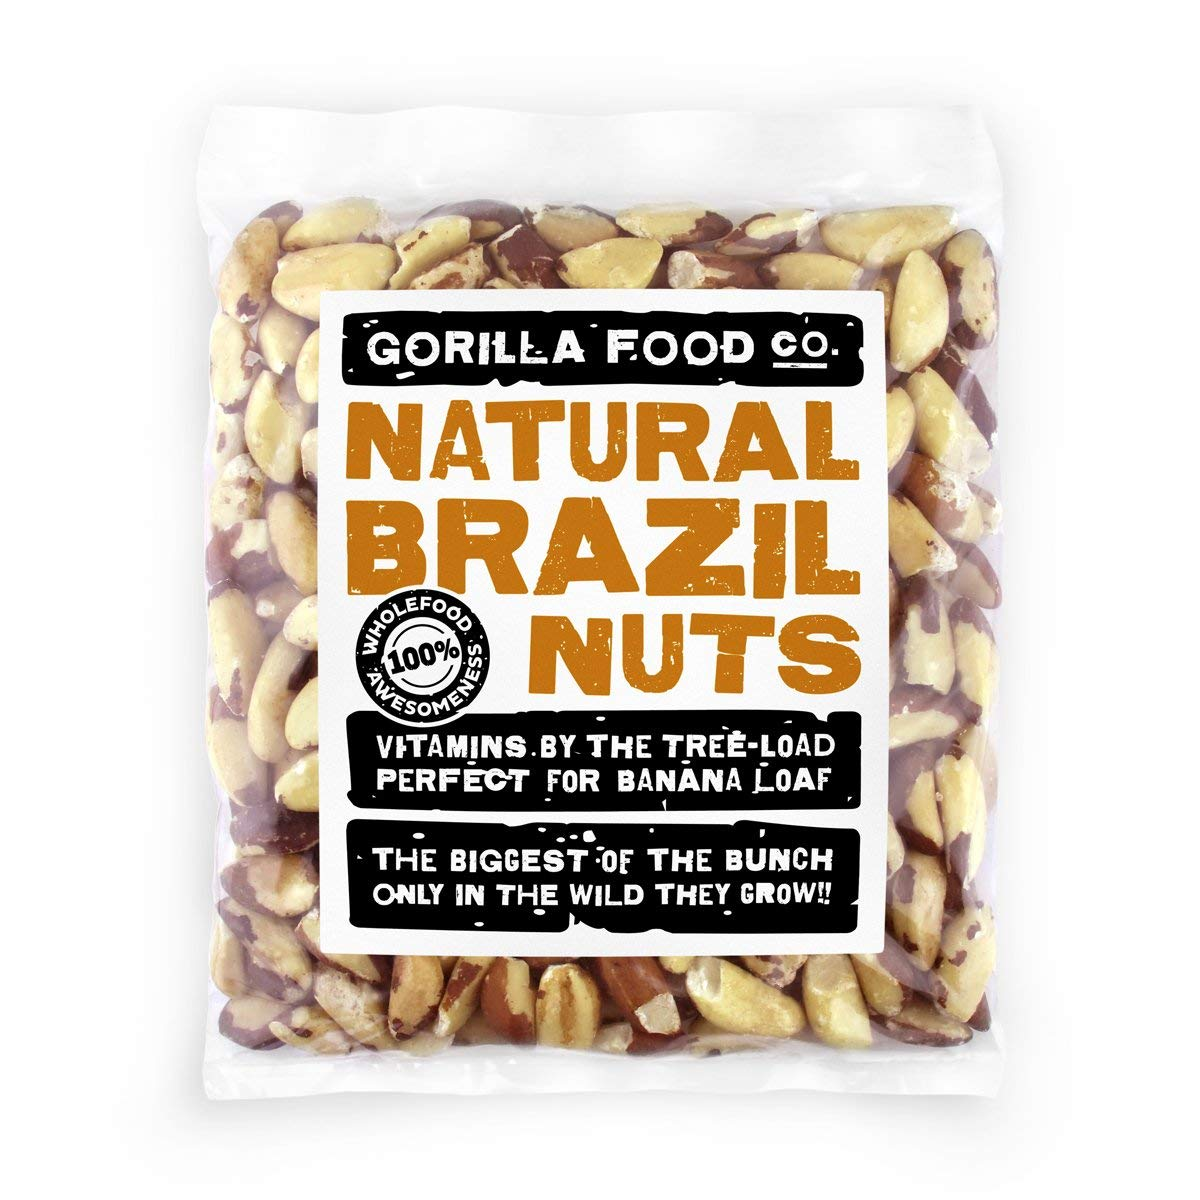 Premium Brazil Nuts Raw Whole - 8oz Resealable Bag